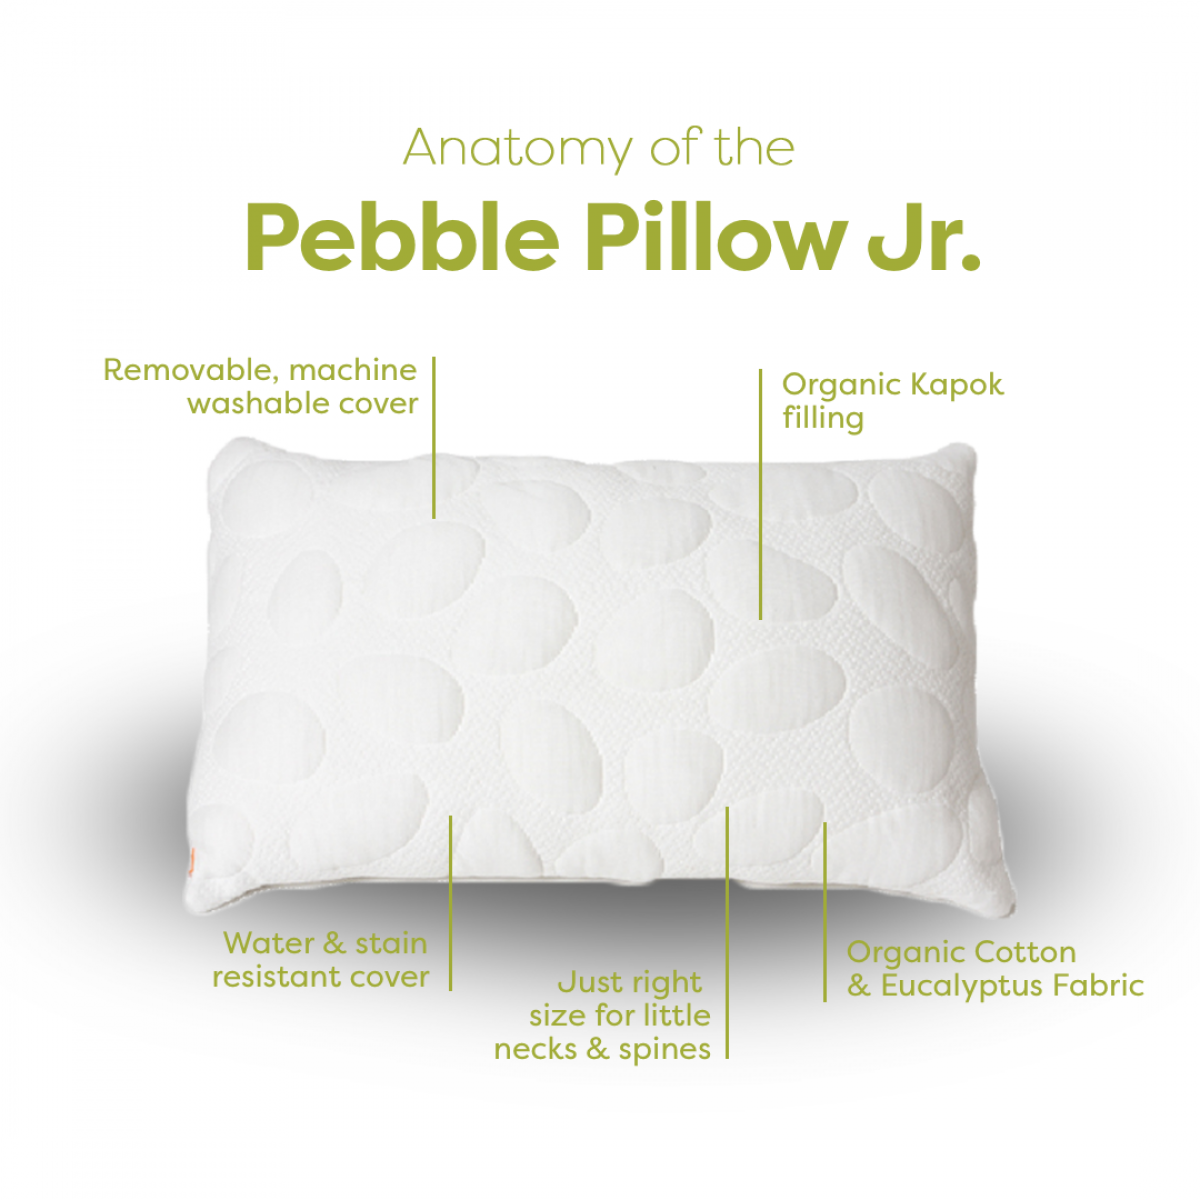 Nook Organic Pebble Pillow Jr Anatomy